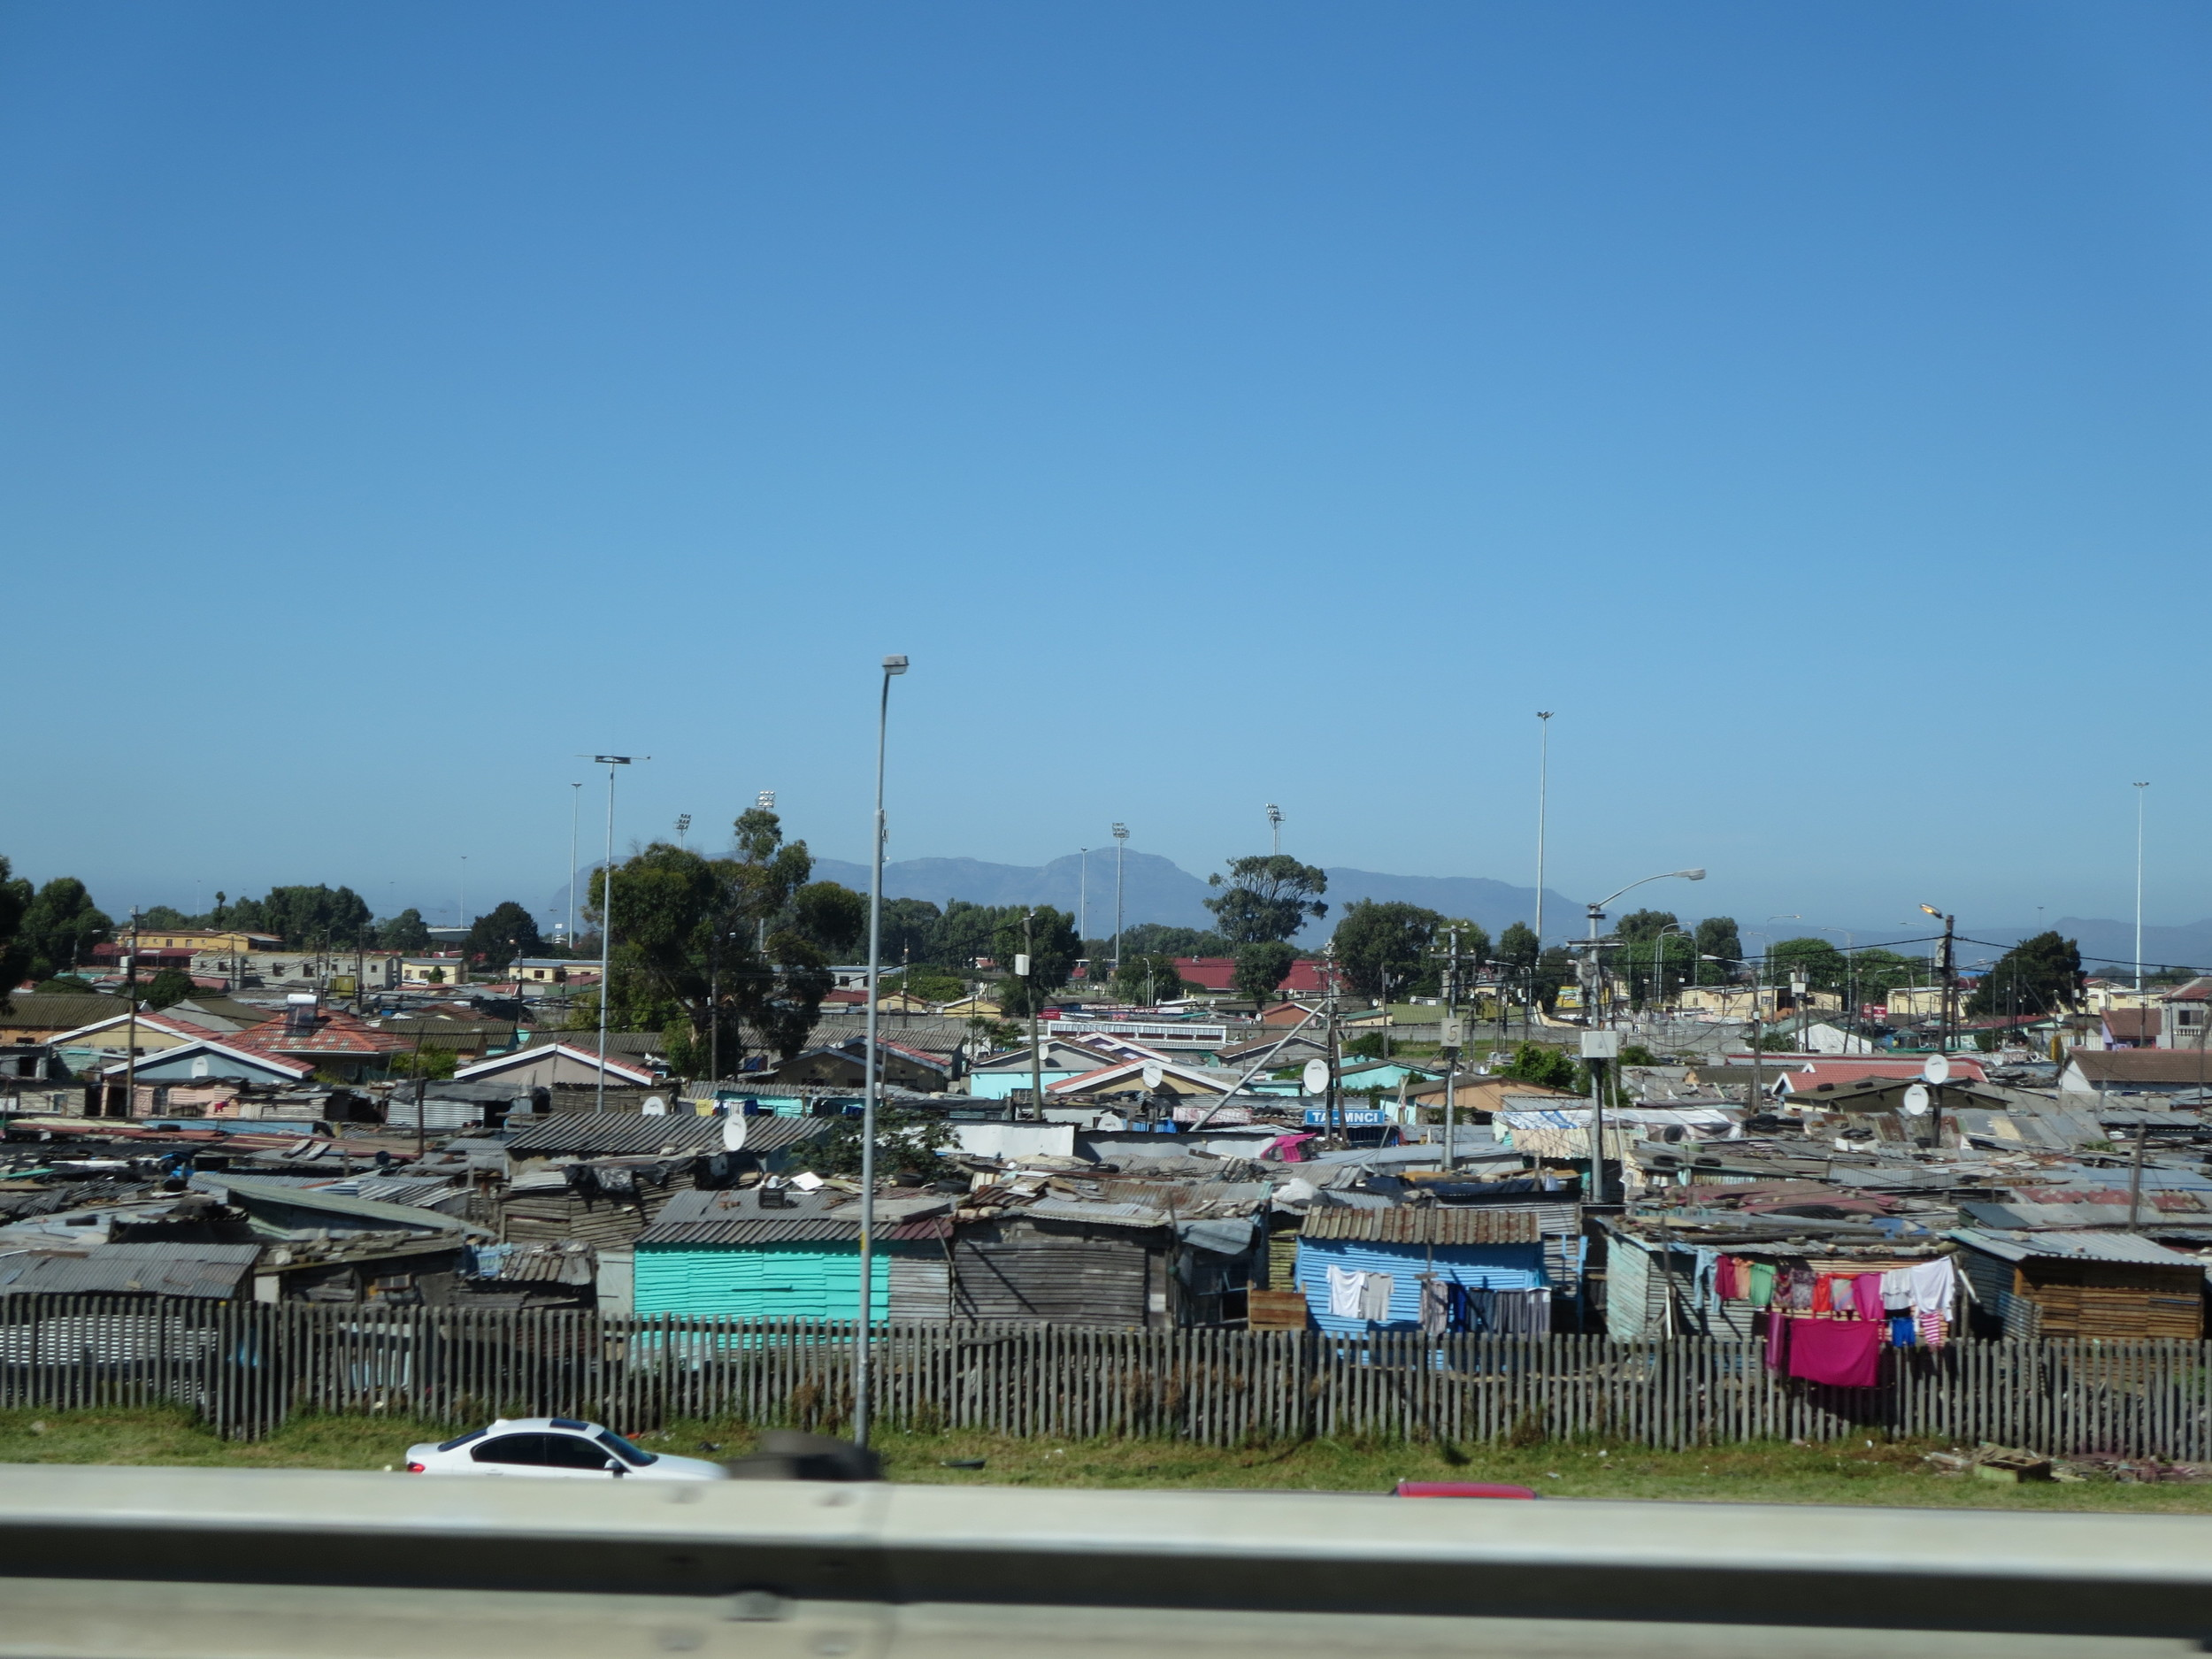 We drove past Townships like this for many km - very sad to see these conditions